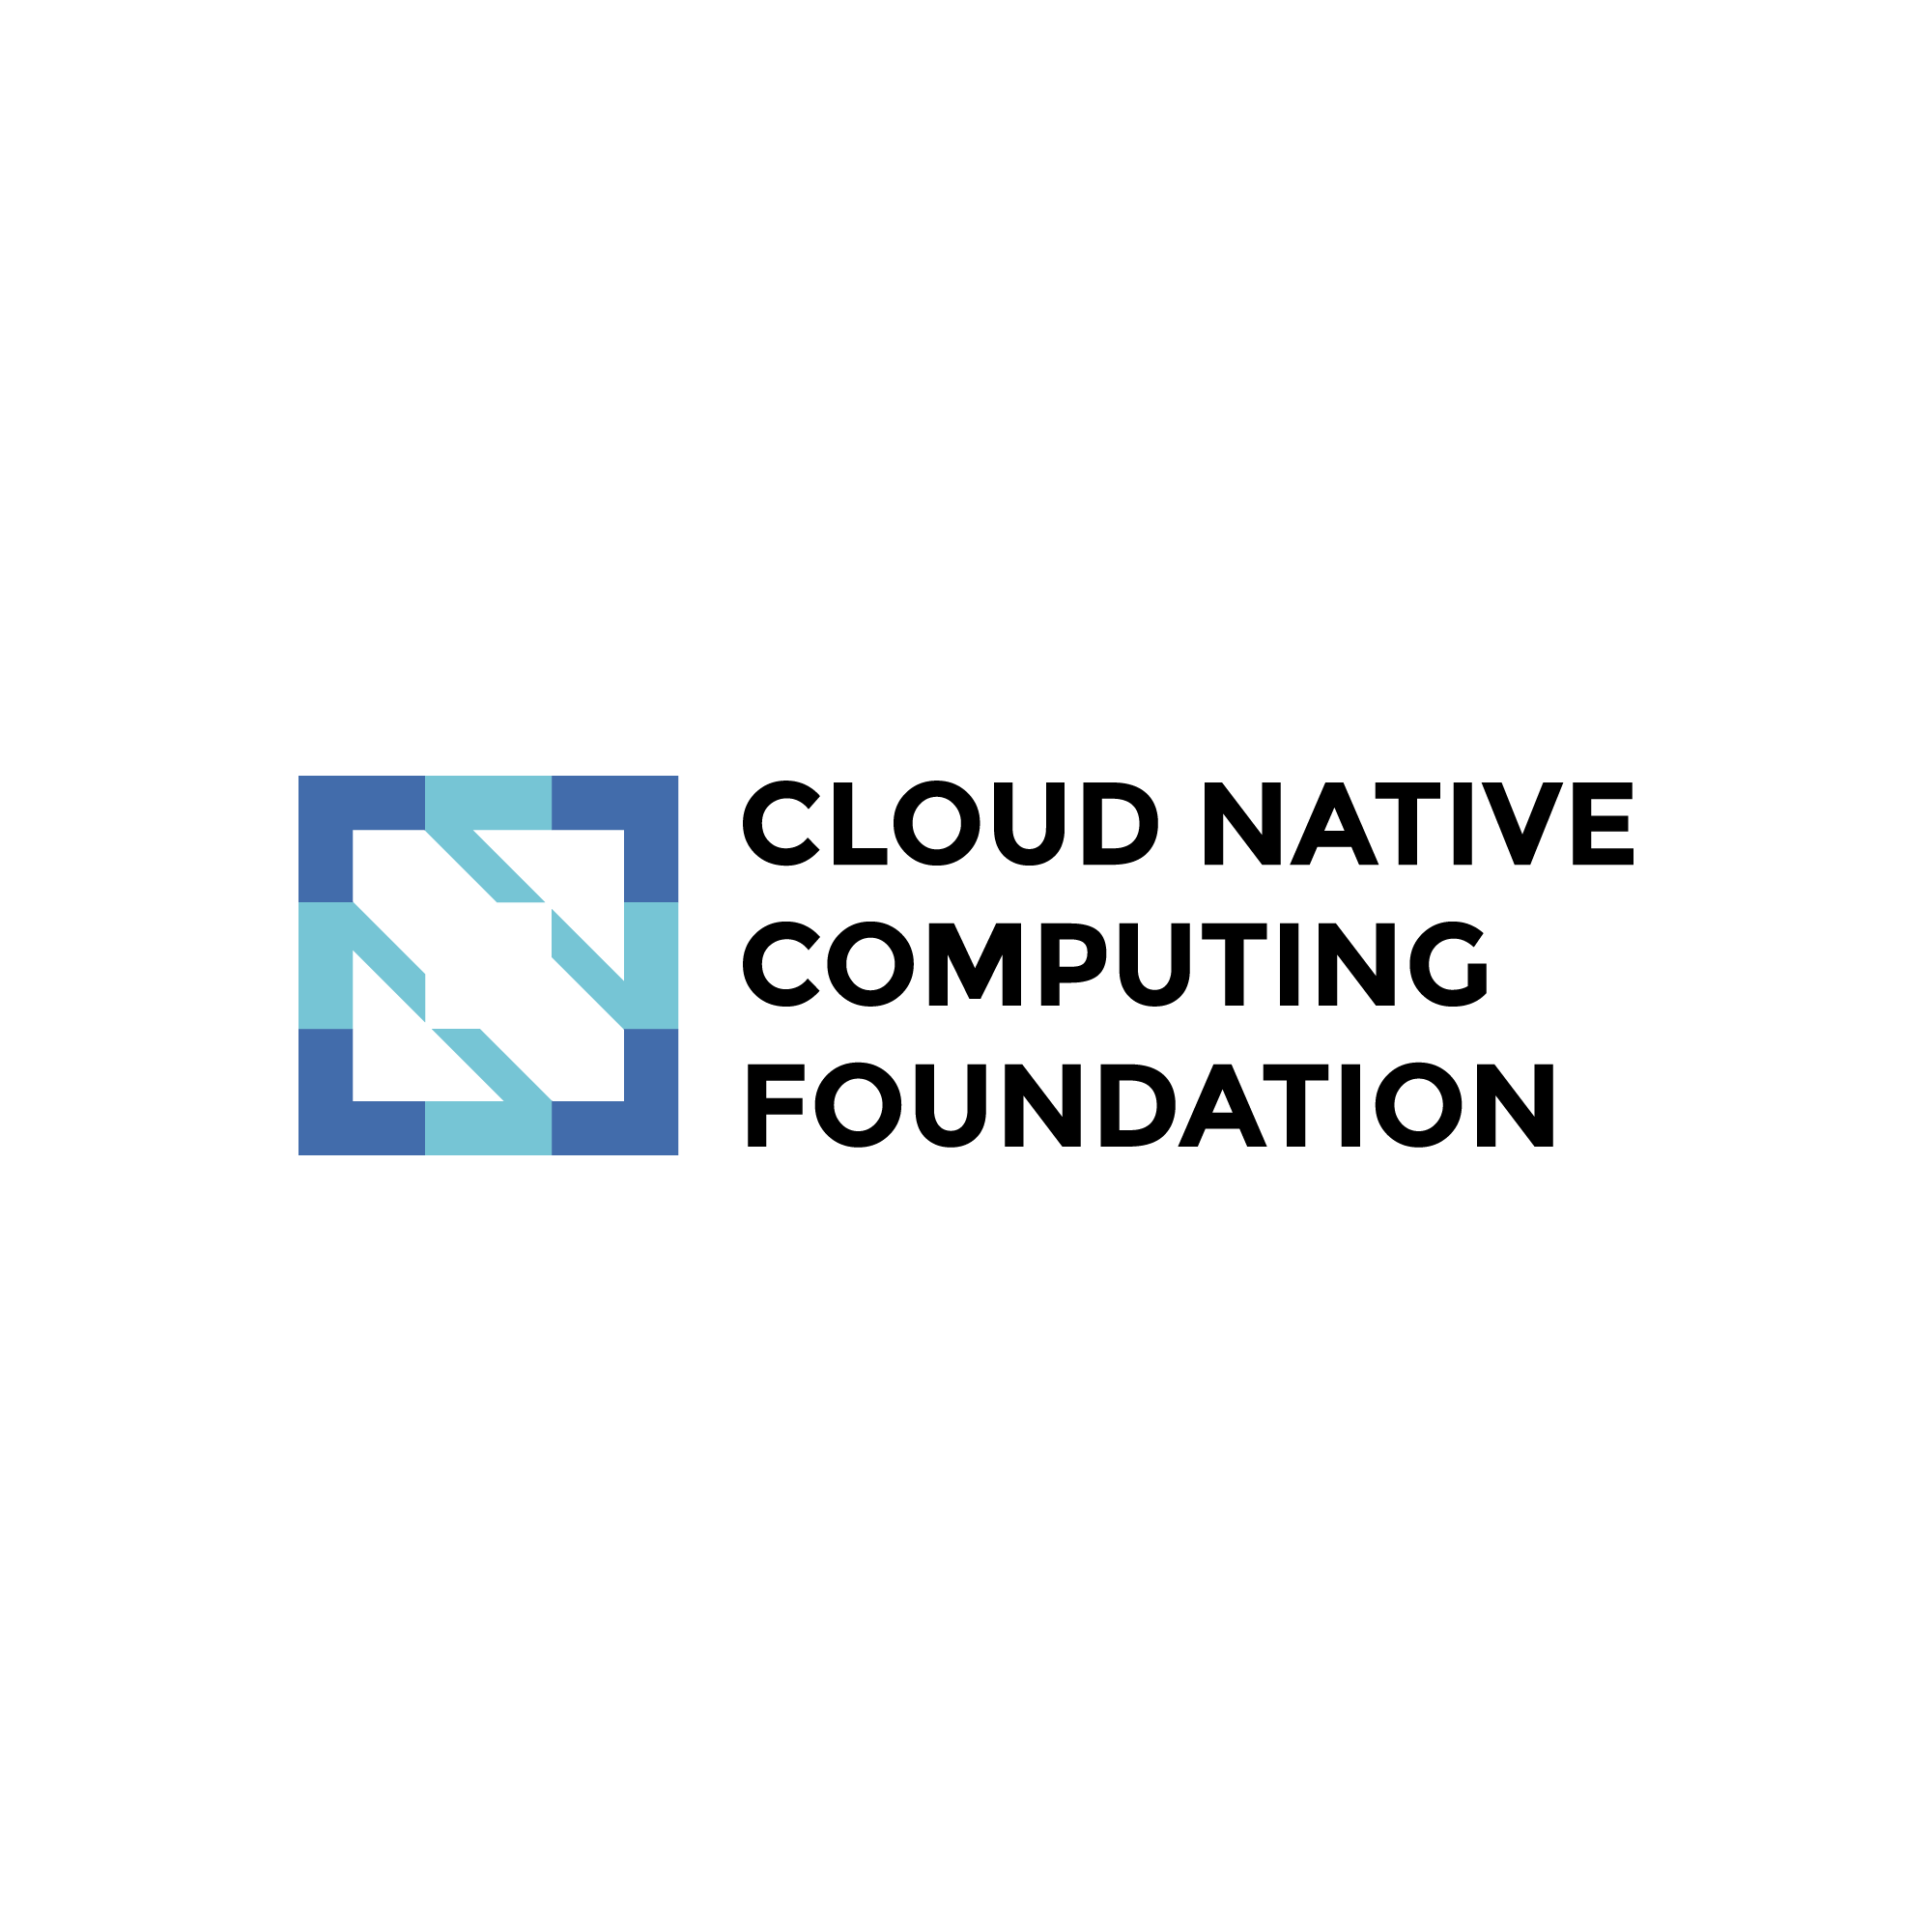 CNCF_Foundation.png